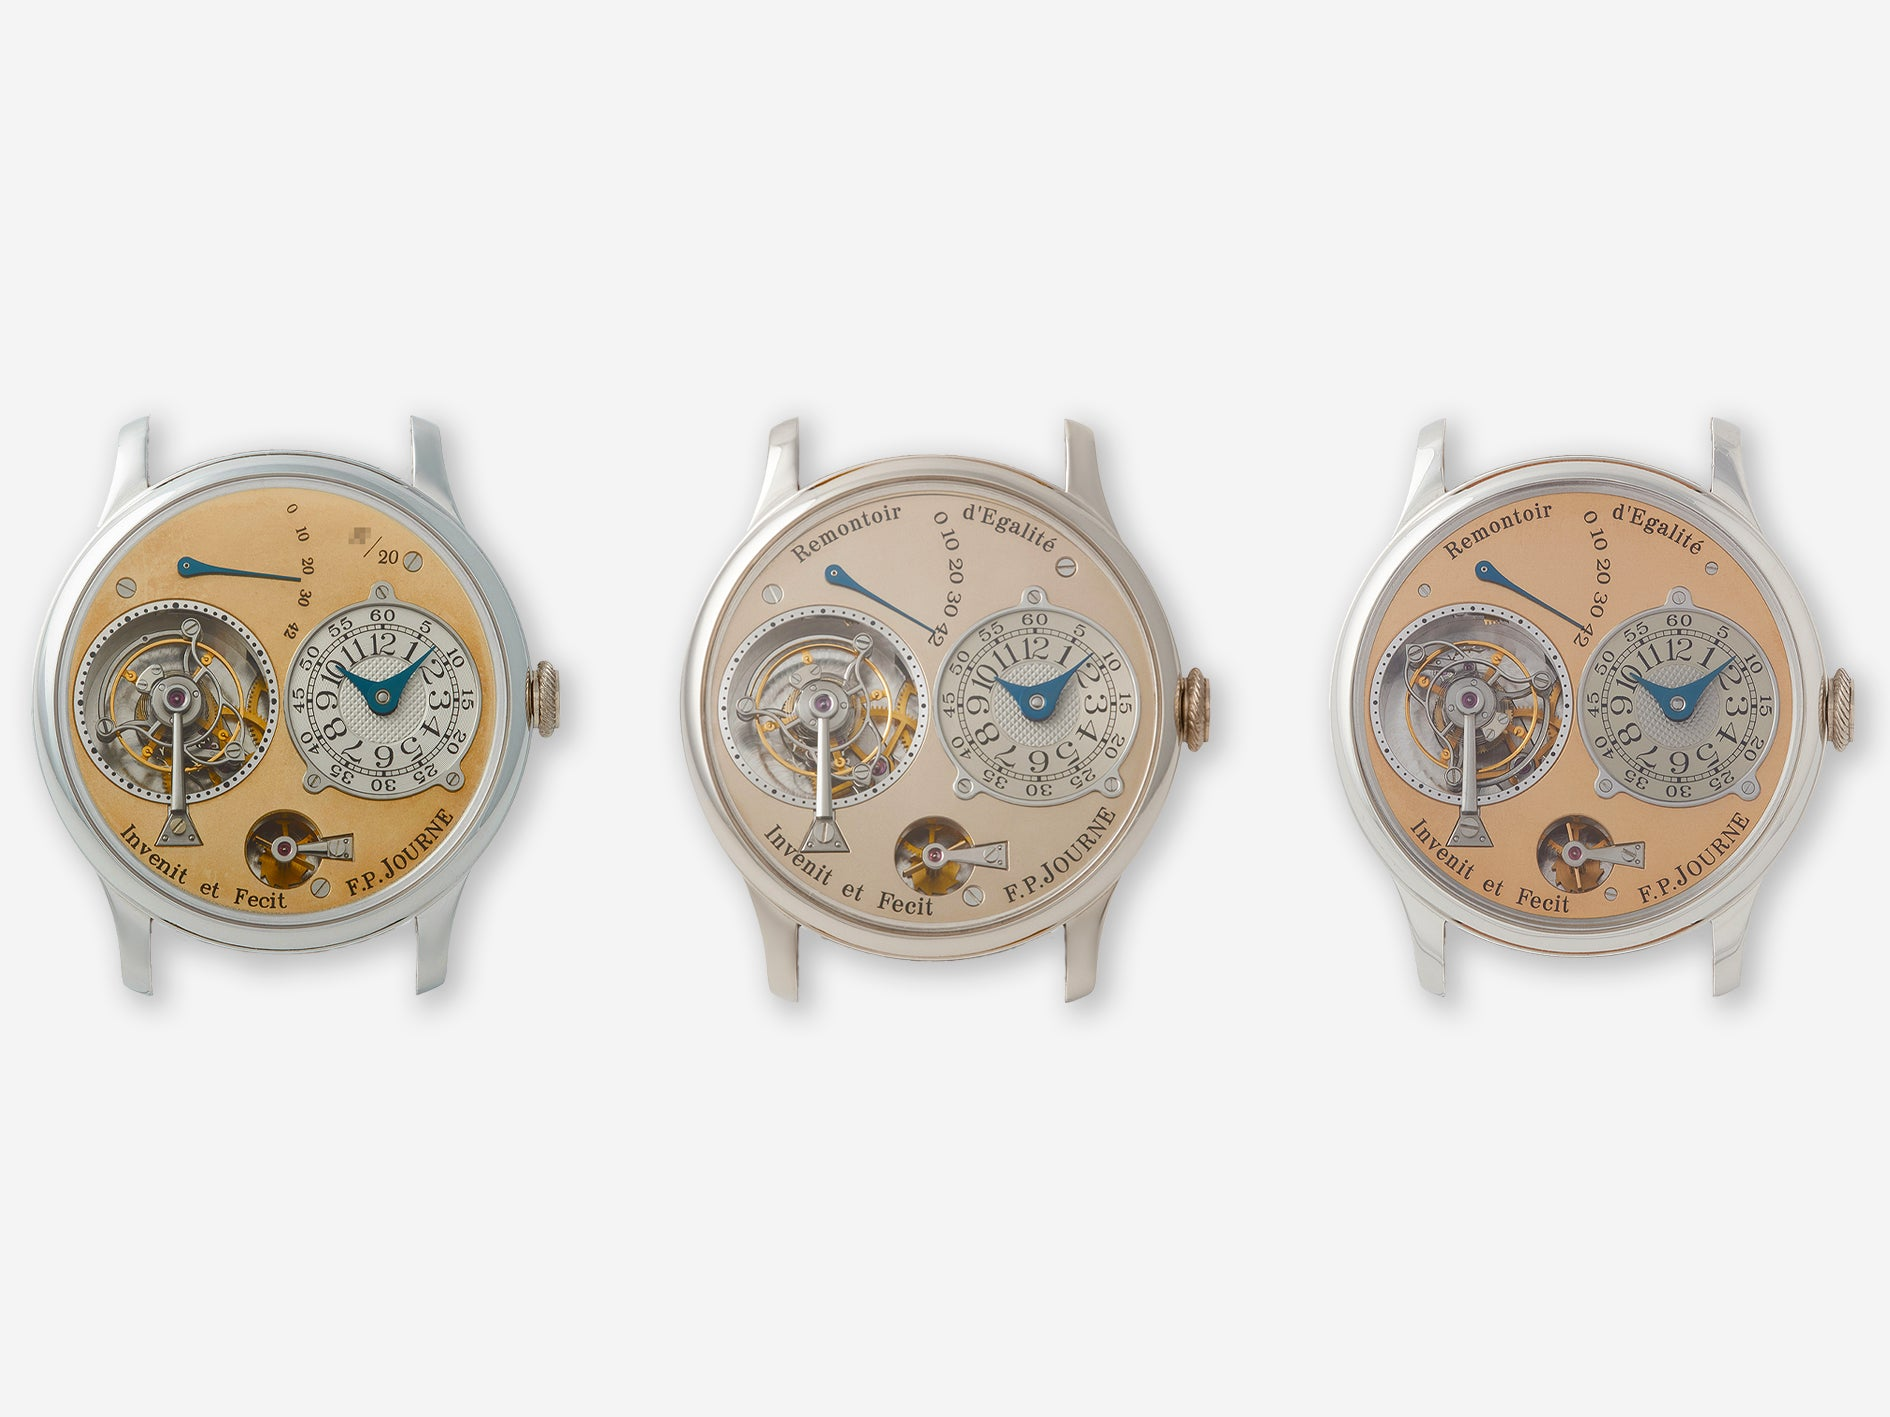 F.P. Journe Souscription Tourbillon, third generation Tourbillon and fourth generation Tourbillon